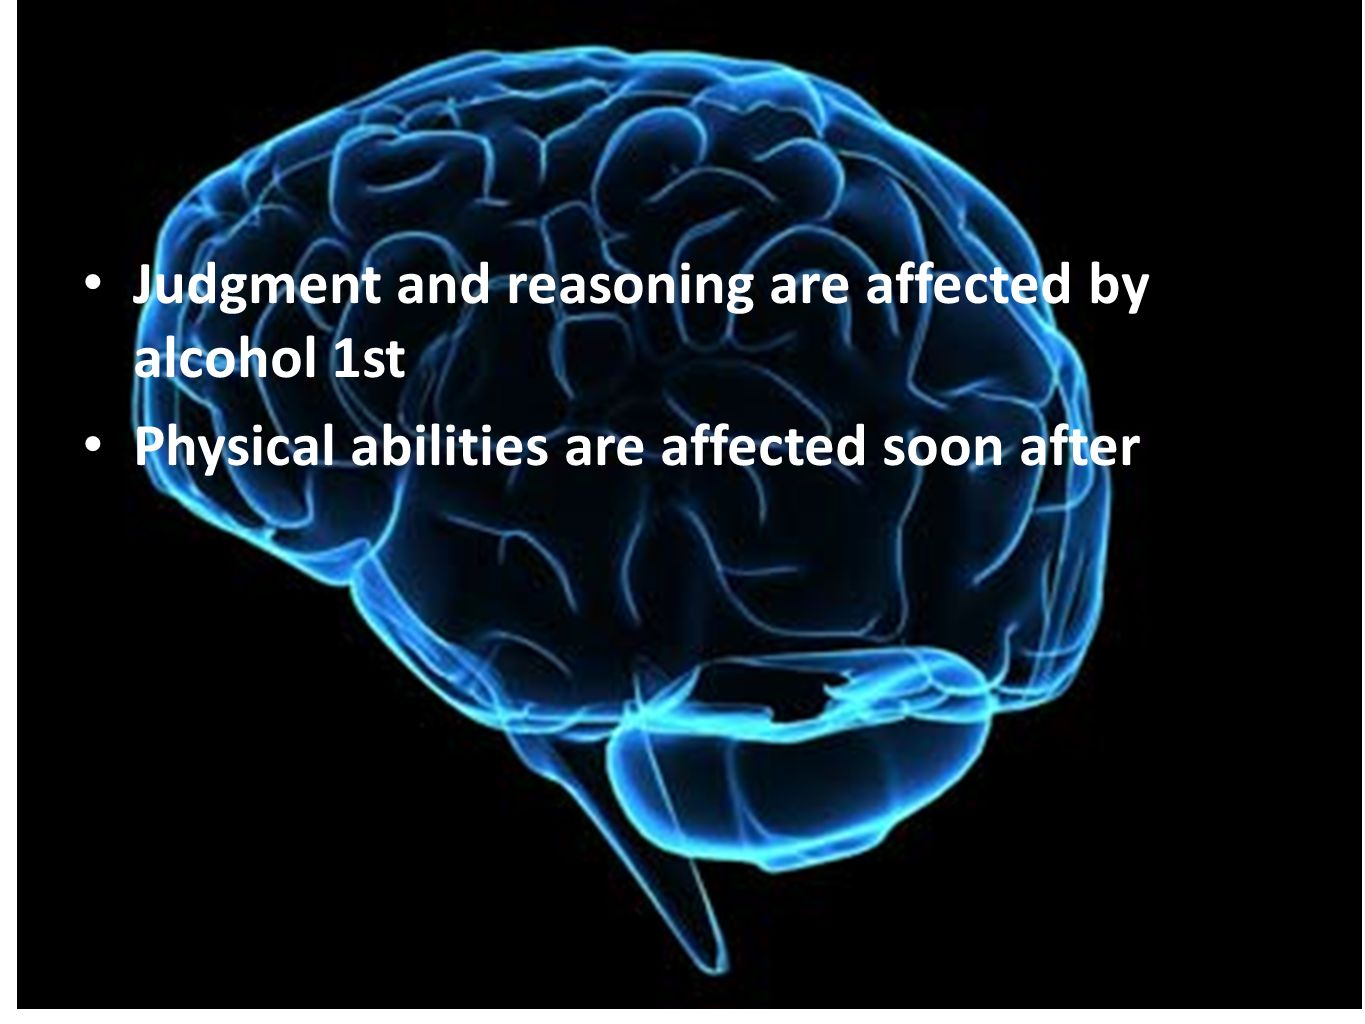 Judgment and reasoning are affected by alcohol 1st Physical abilities are affected soon after